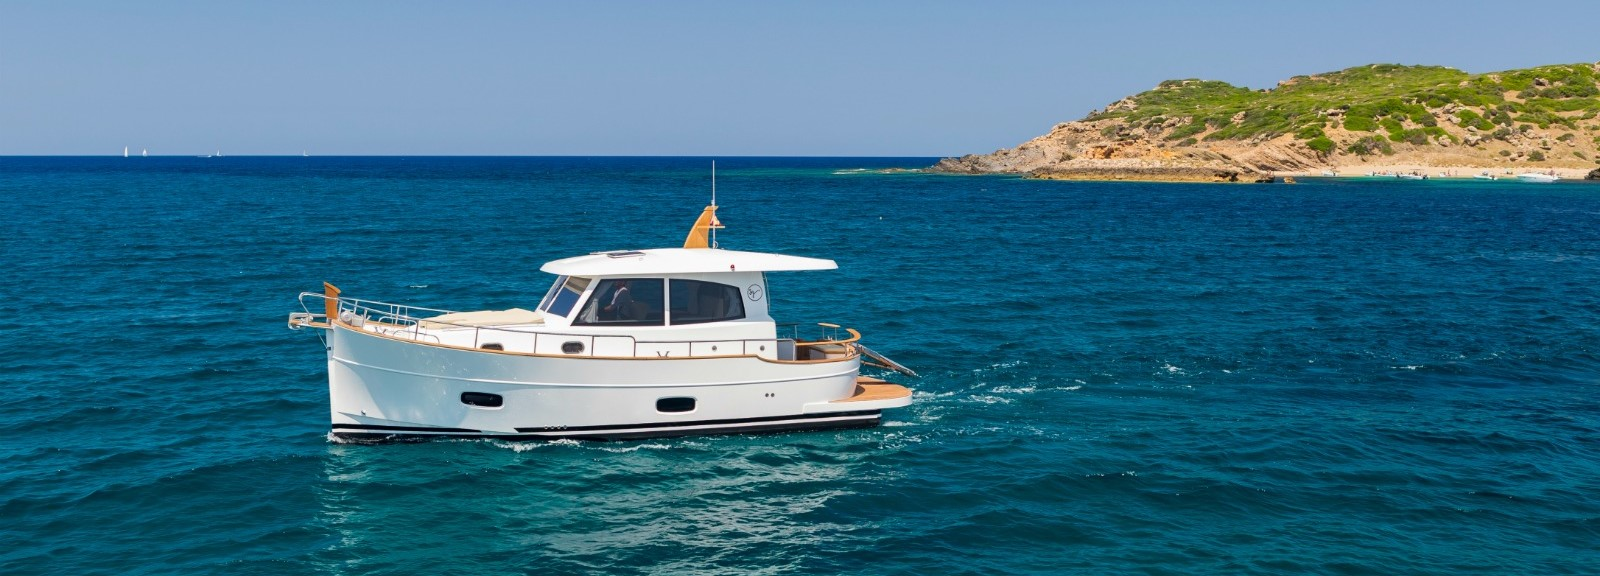 quality new yachts for sale